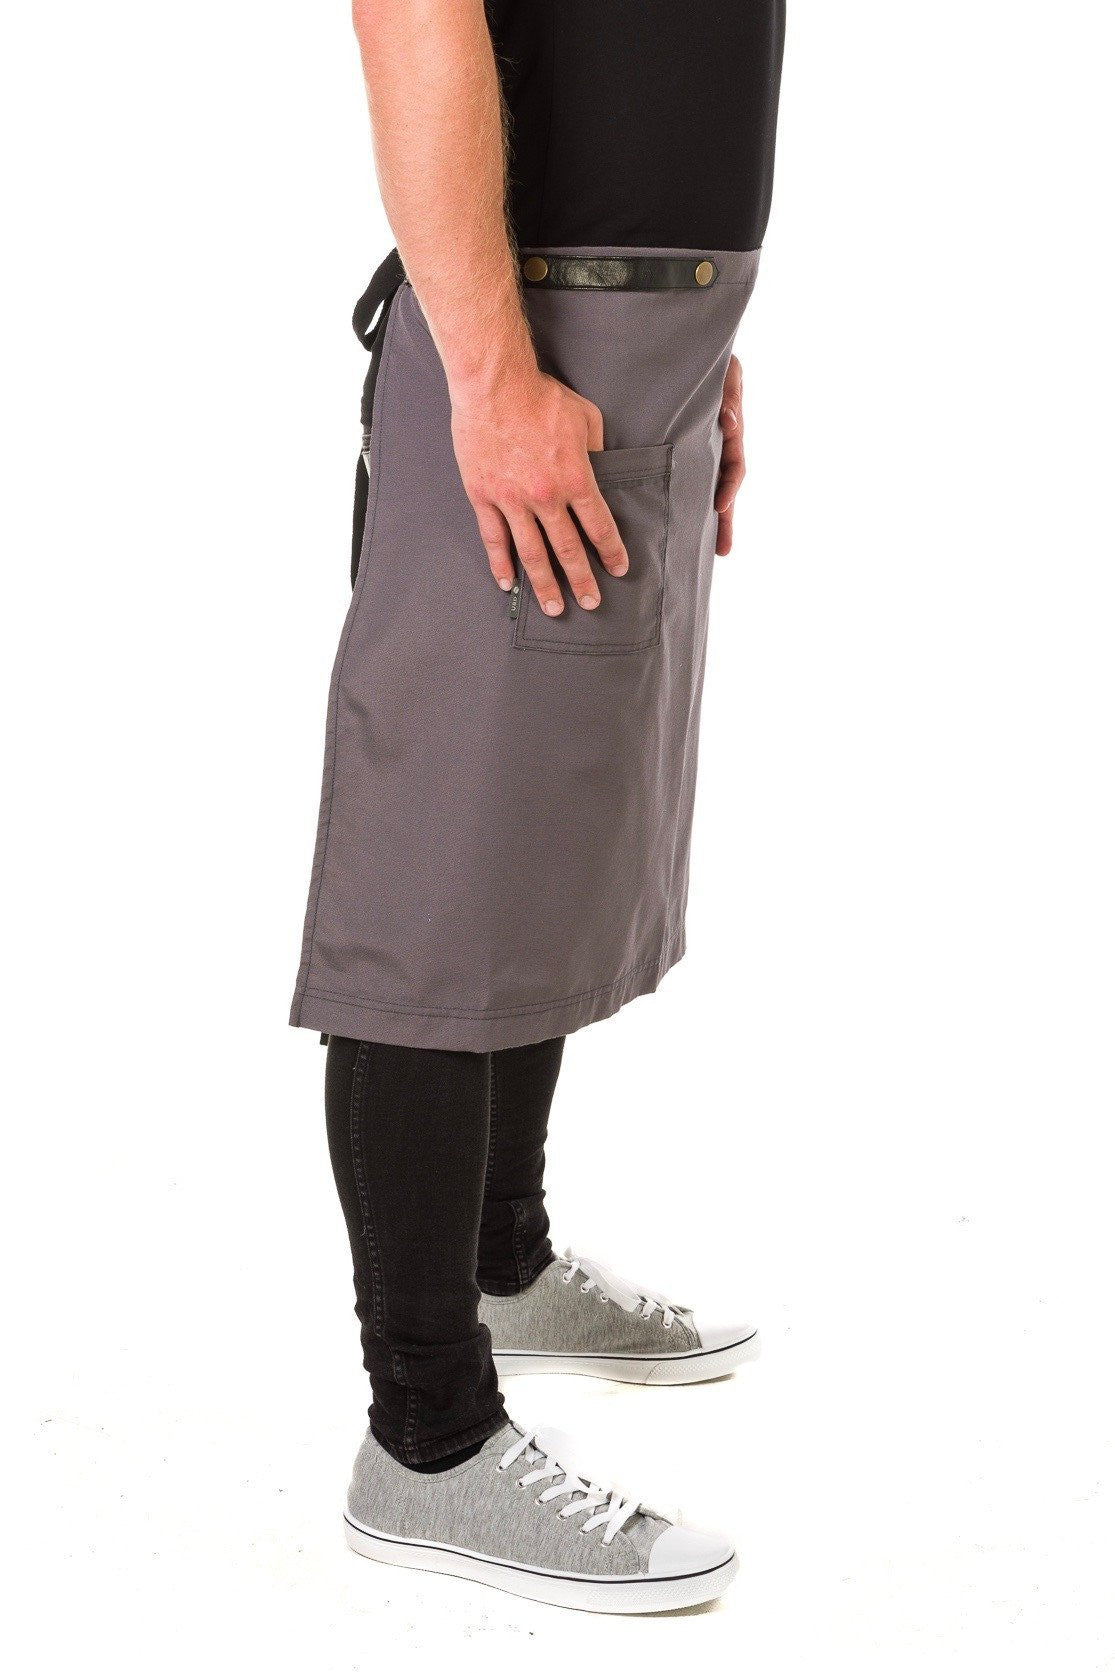 UBD ARCHER Waist Apron with PU Leather studded strap - STEEL